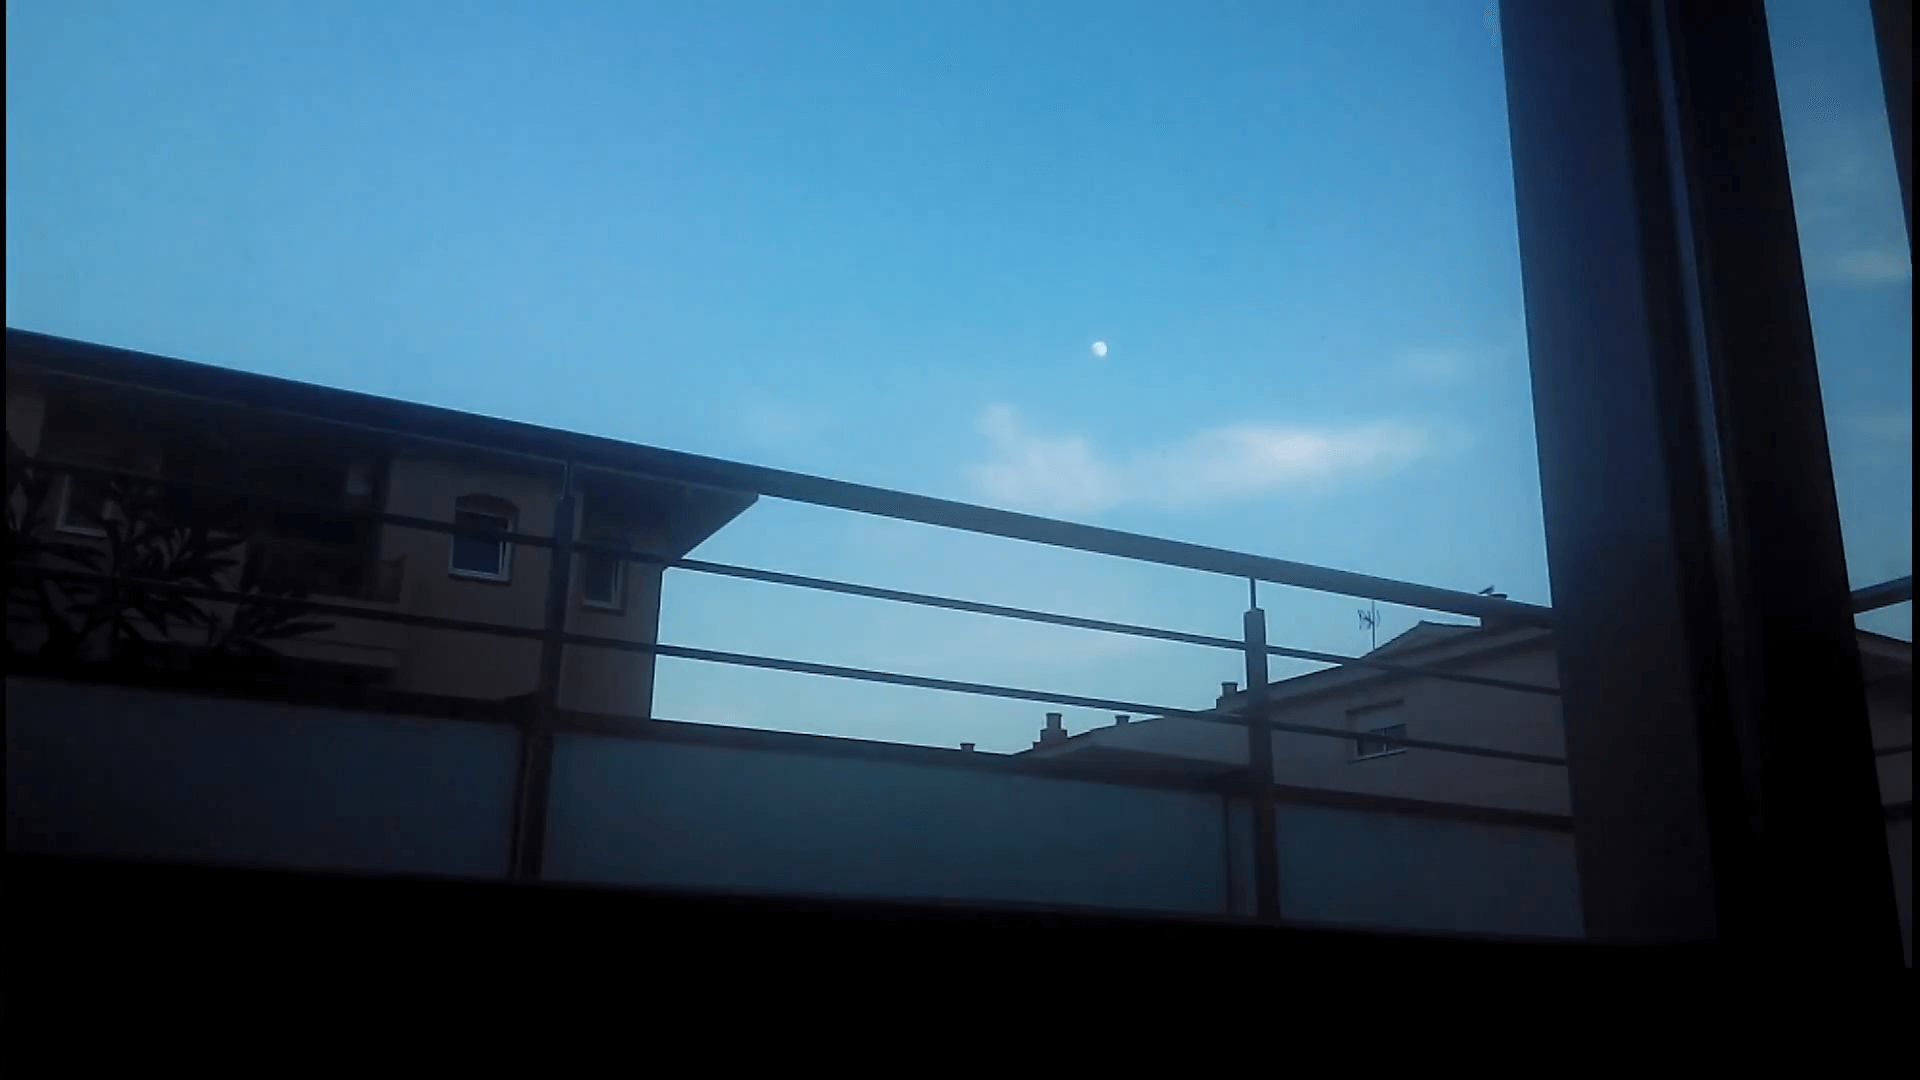 The Moon from my balcony